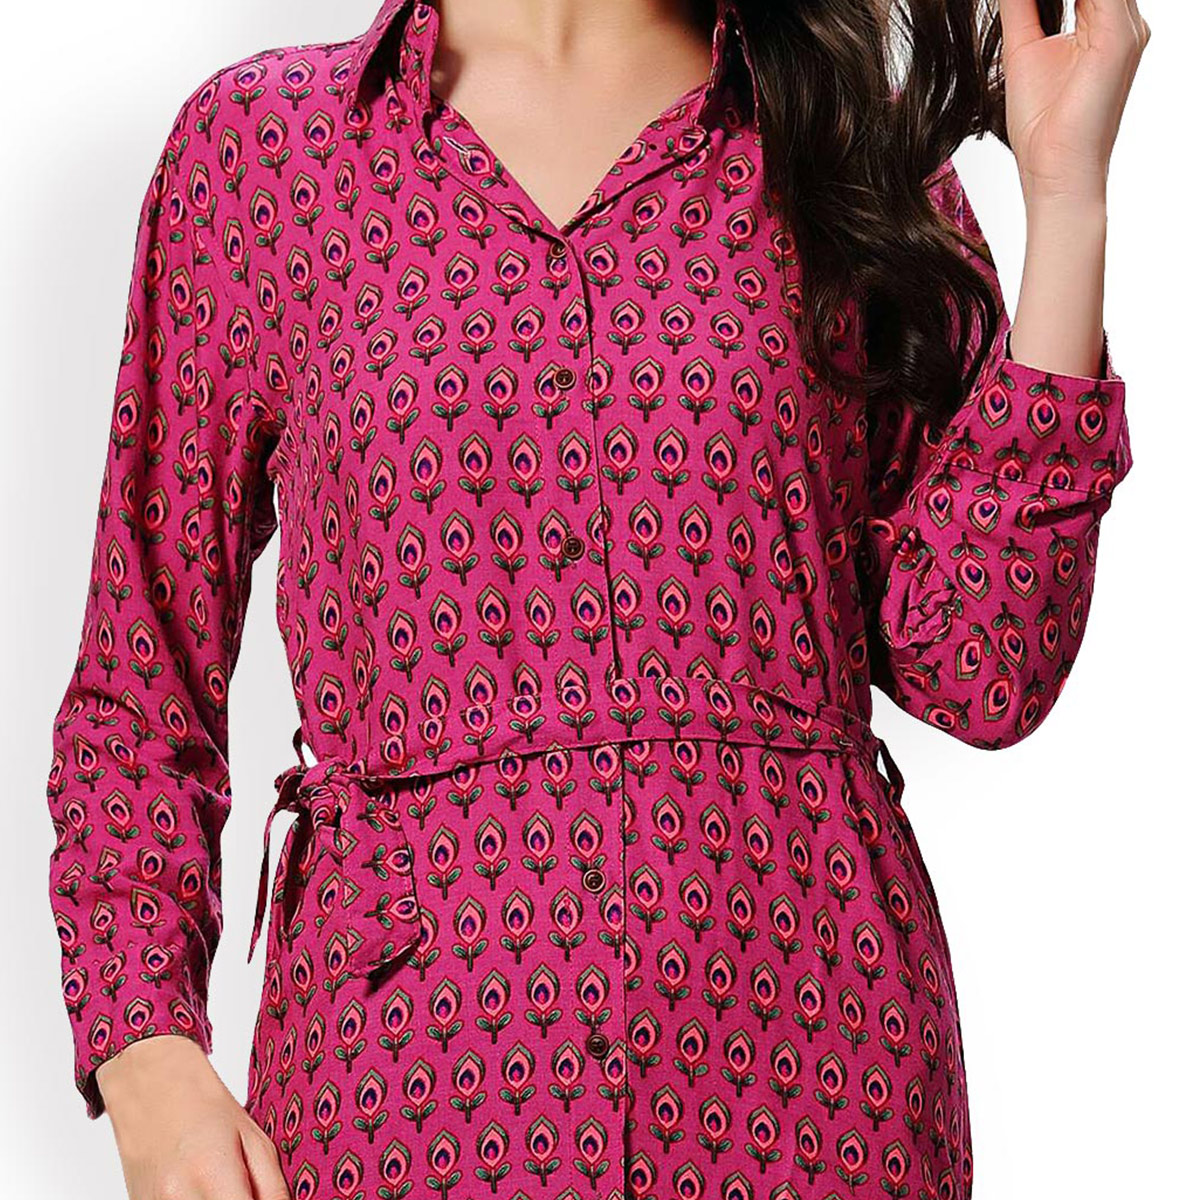 Pink Printed Shirt with Collar Neck